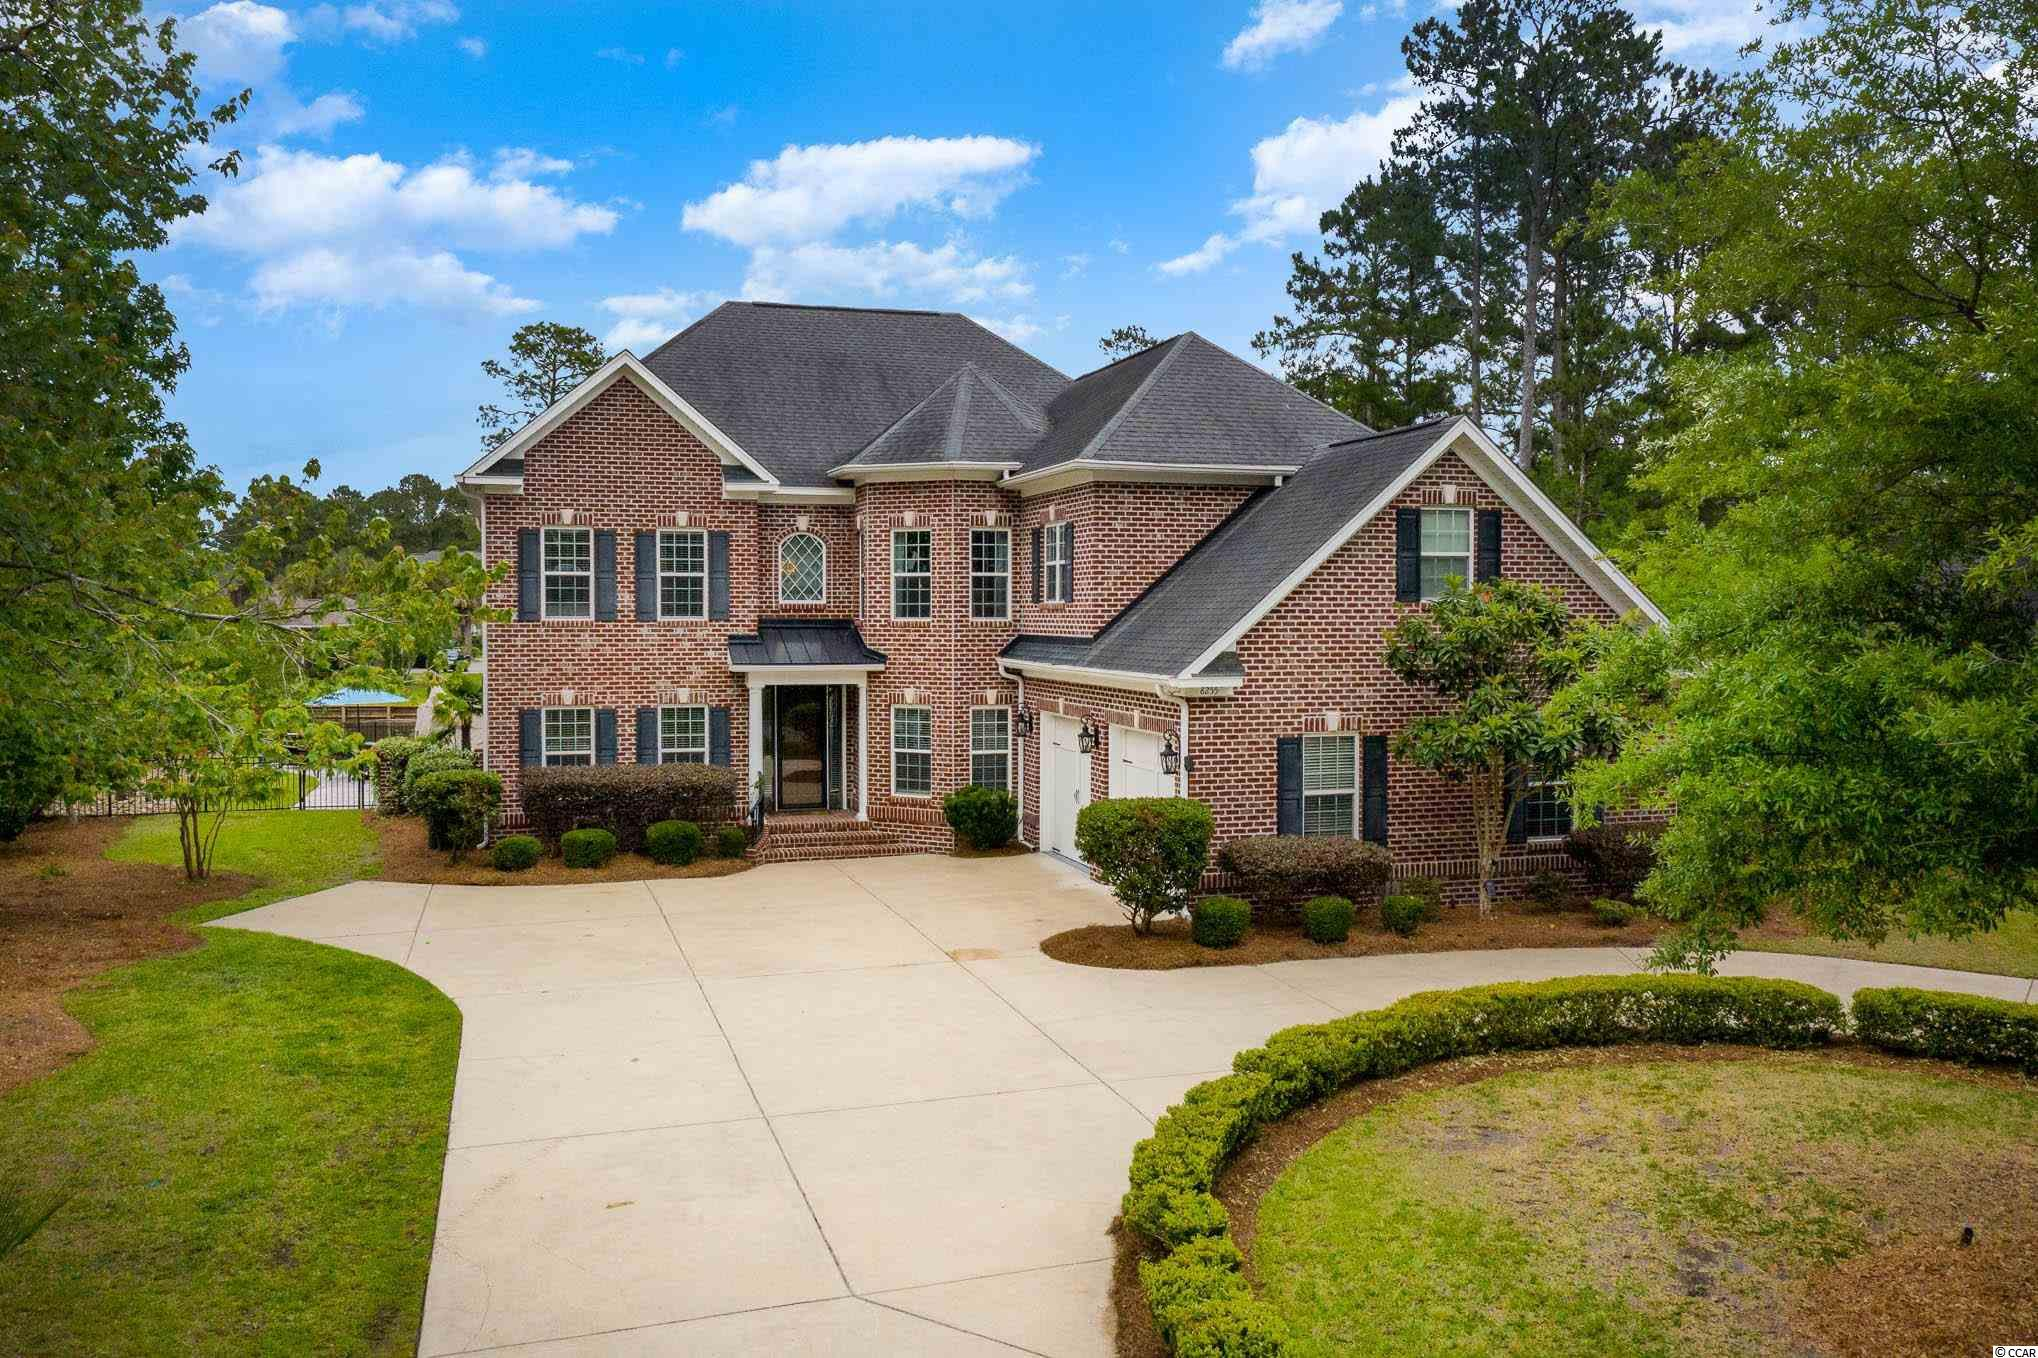 This amazing all brick home is situated on 0.42 acres just minutes to Conway Medical Center and Coastal Carolina University and also a short drive to Myrtle Beach. Forest Lake Estates is a quiet community with limited traffic and a private gated entrance onto Myrtle Ridge Road as well as access of off Hwy 501 at the Burning Ridge Golf Course entrance. You're welcomed to the home with a circular driveway and oversized side load garage. The owner remodeled the kitchen, master bath, and den in 2019. Downstairs you'll find an office, bedroom with private full bath, den and a great room with a soaring ceiling and beautiful stacked stone fireplace surrounded by custom built in shelves. The den also features custom built in cabinetry. The kitchen is well laid out with lovely custom cabinetry, work island, tile backsplash and stainless appliances. The kitchen is adjoined with a spacious breakfast nook and formal dining room. Upstairs is a luxurious master suite with a sitting area and fireplace, and walk in closets of your dreams. The master bath was a complete remodel and is like a 5 star spa. There are 2 additional bedrooms and a bath upstairs.  The laundry room is also upstairs with cabinetry for storage and counter space to make the room very functional.  A heated 14 x 37 pool with hot tub and waterfall were also added in 2019 along with an outdoor kitchen. The backyard is completely fenced with black aluminum with 3 gates, and a play area fenced separately from the pool. There is an irrigation system with its own water meter for cost efficiency. The outdoor space is perfect for a relaxing evening or to entertain guests. There's easy access to Hwy 544 and 501. What's not to love! It's perfection inside and out!